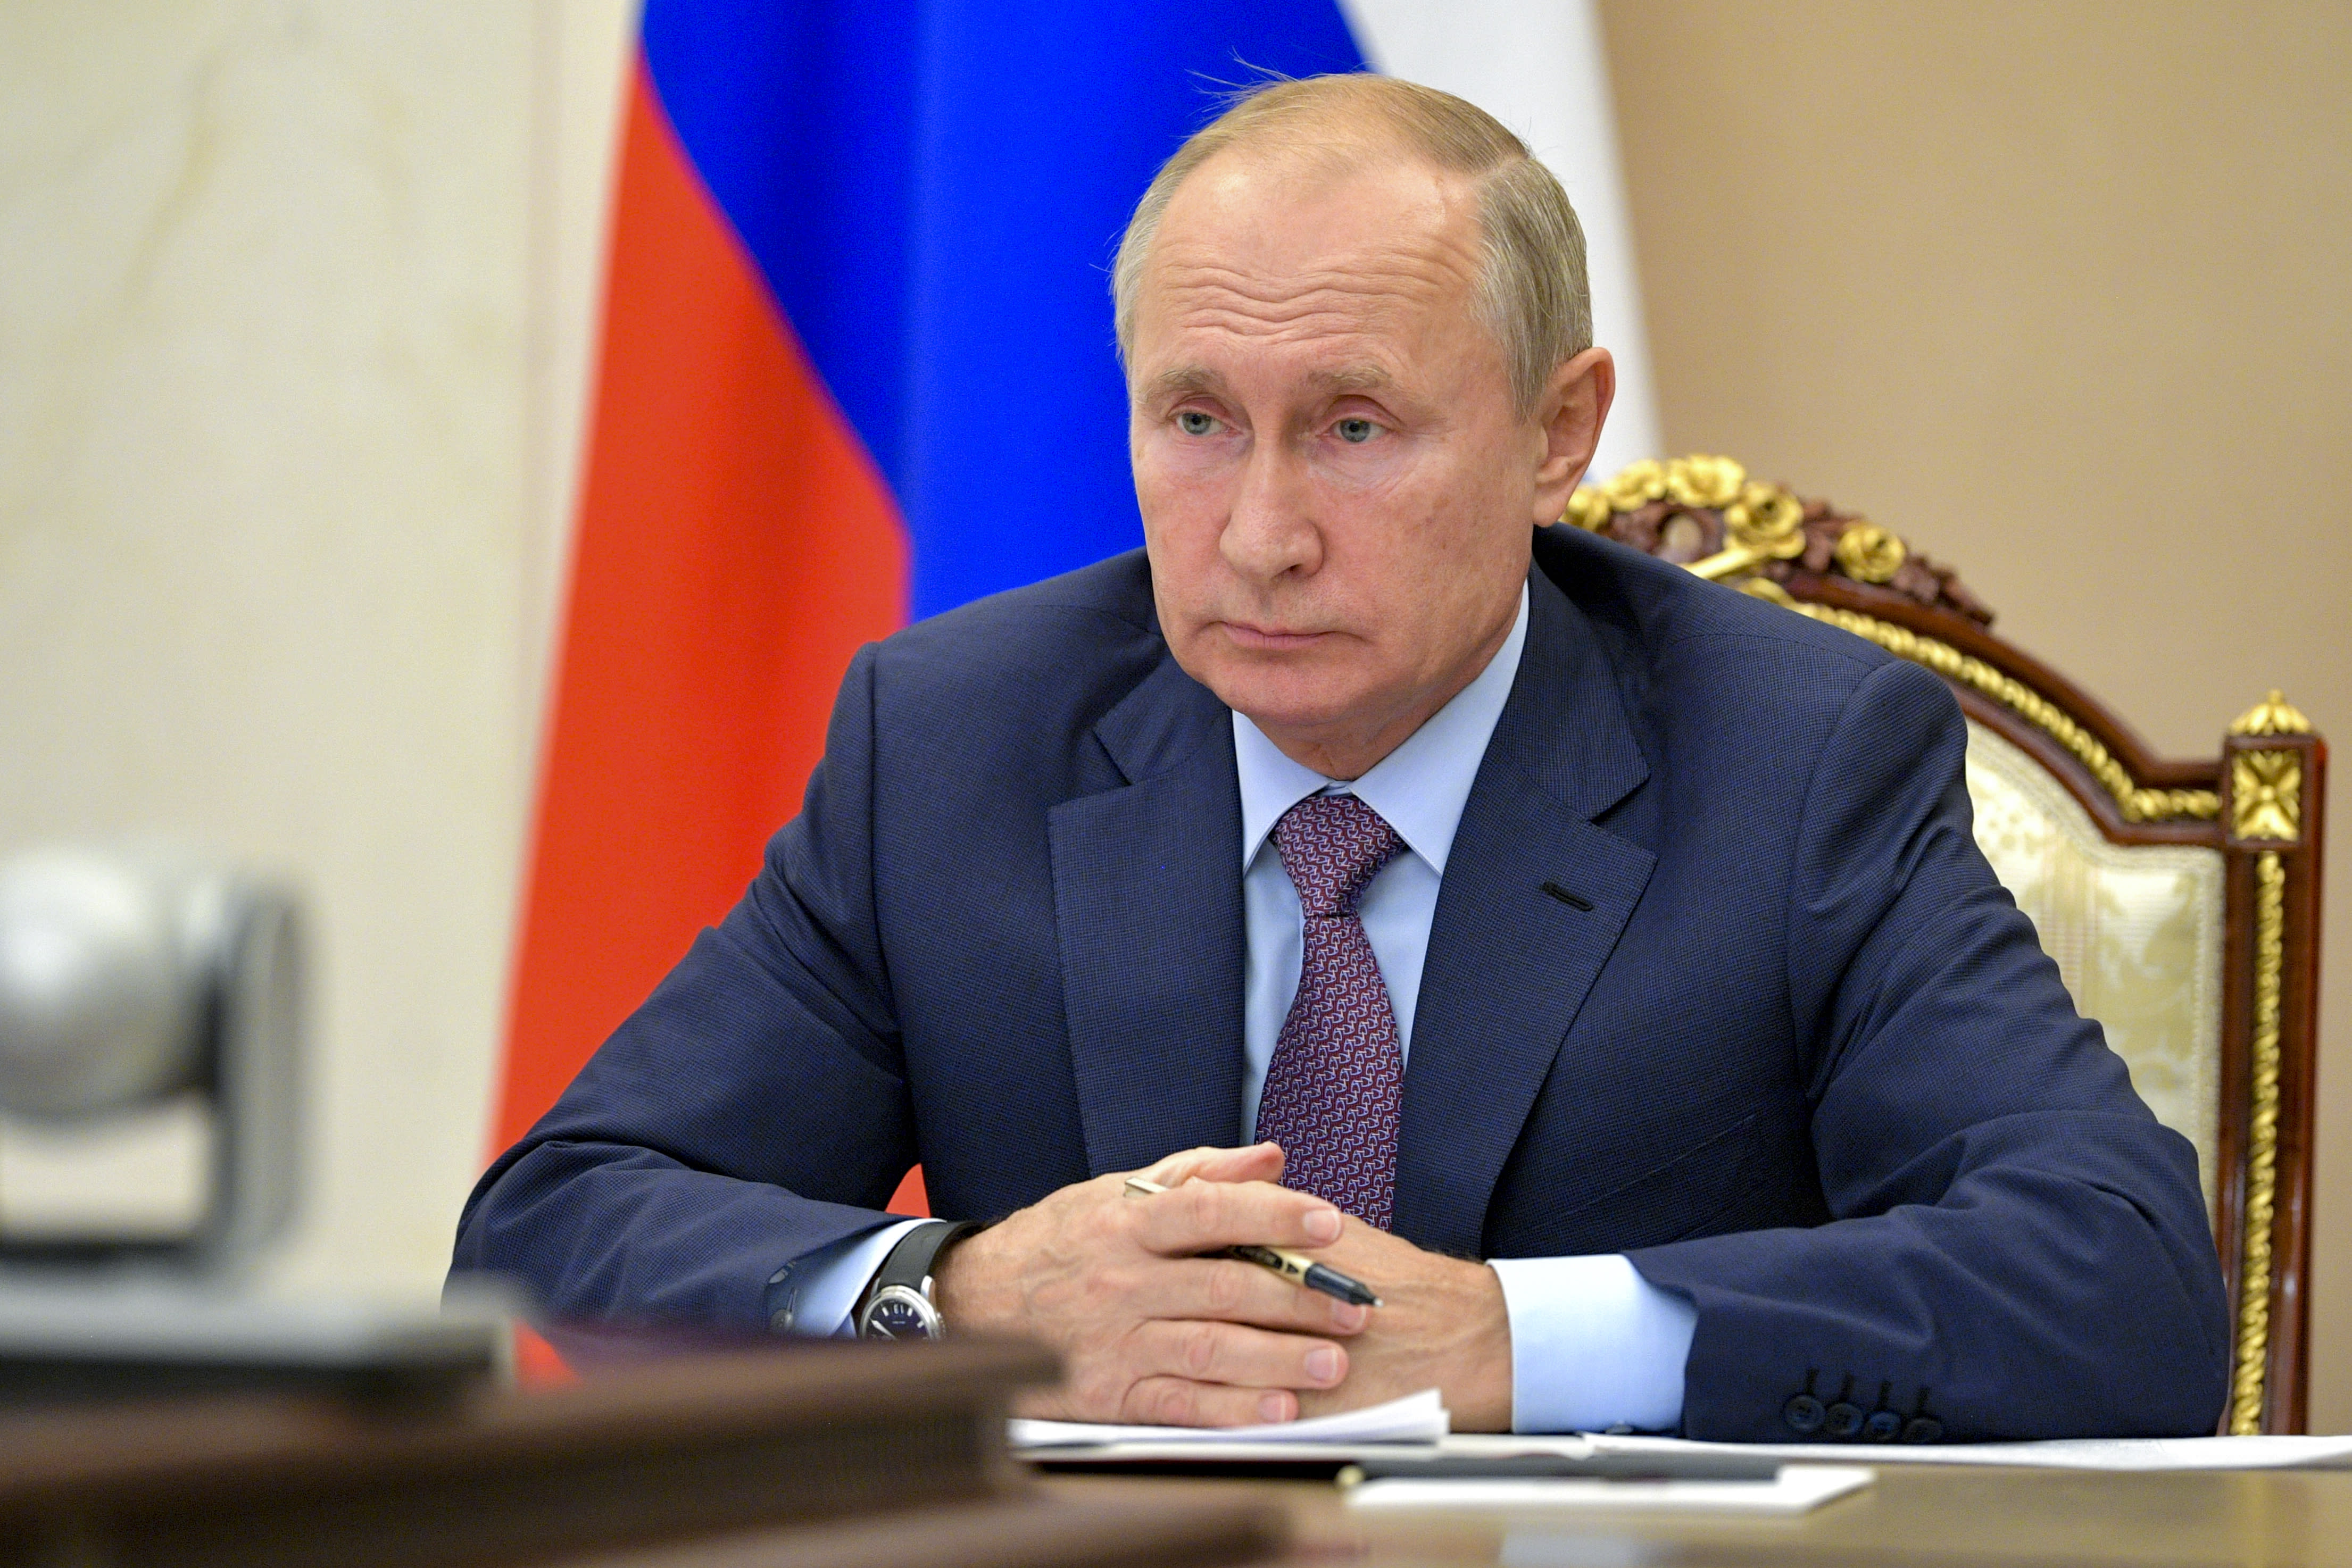 Putin proposes yearlong extension of nuclear pact with US